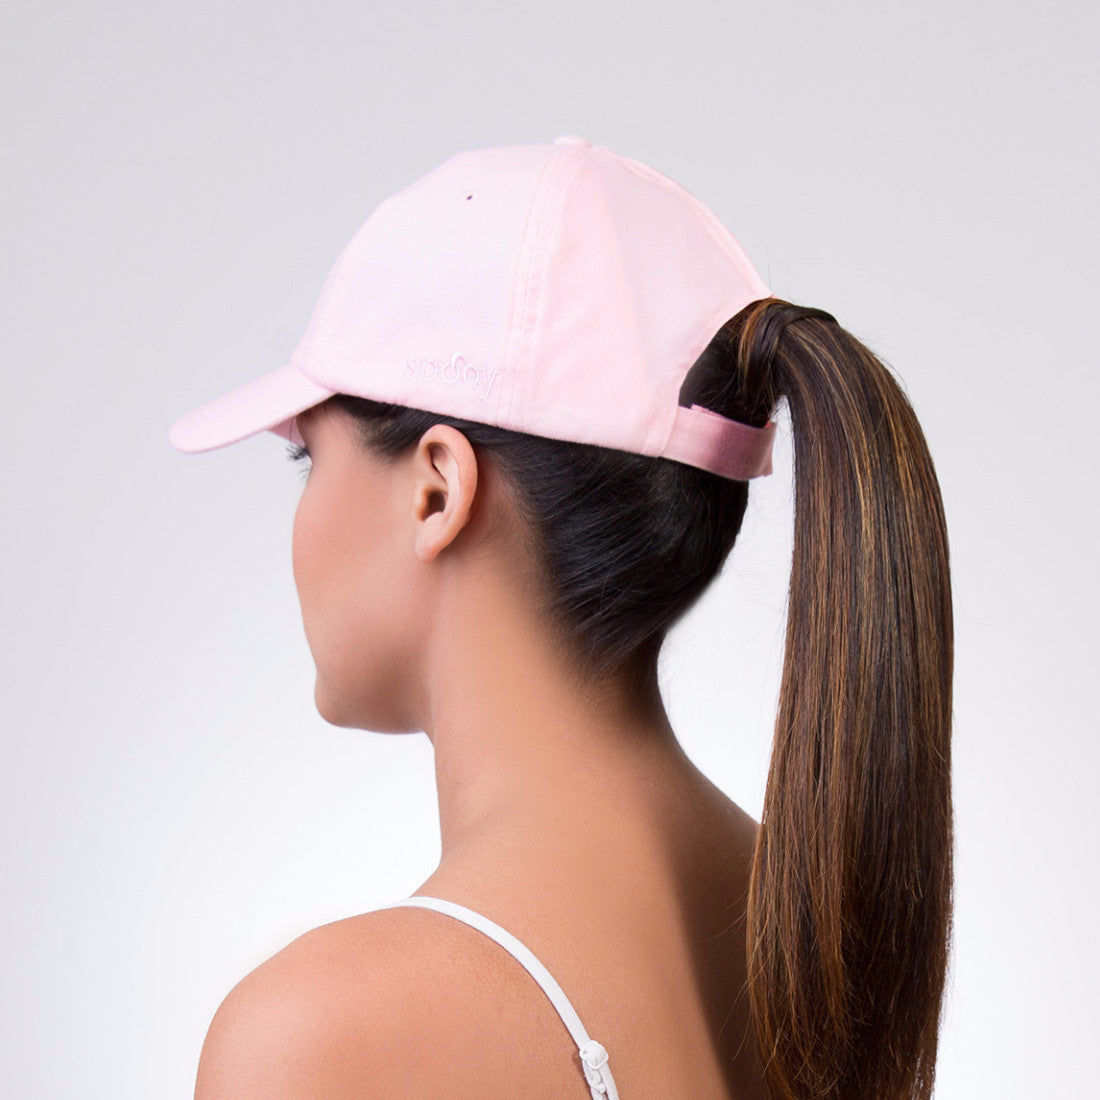 Spony Ponytail Baseball Cap - Wear it 2 Ways!! Pink Minx c1e00059651